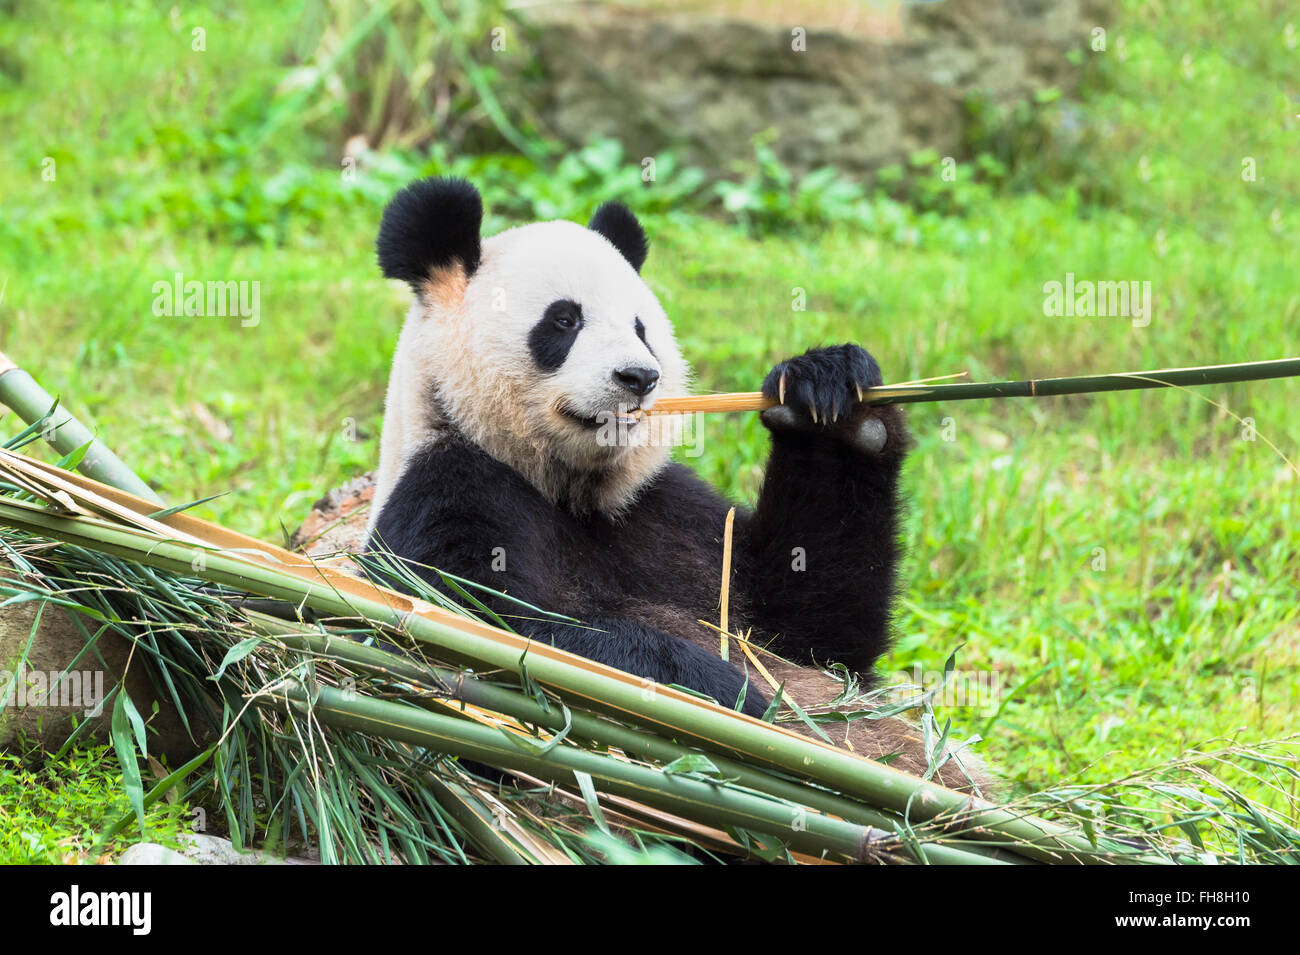 Giant Panda (Ailuropoda melanoleuca) eating bamboo, China Conservation and Research Centre for the Giant Pandas, - Stock Image